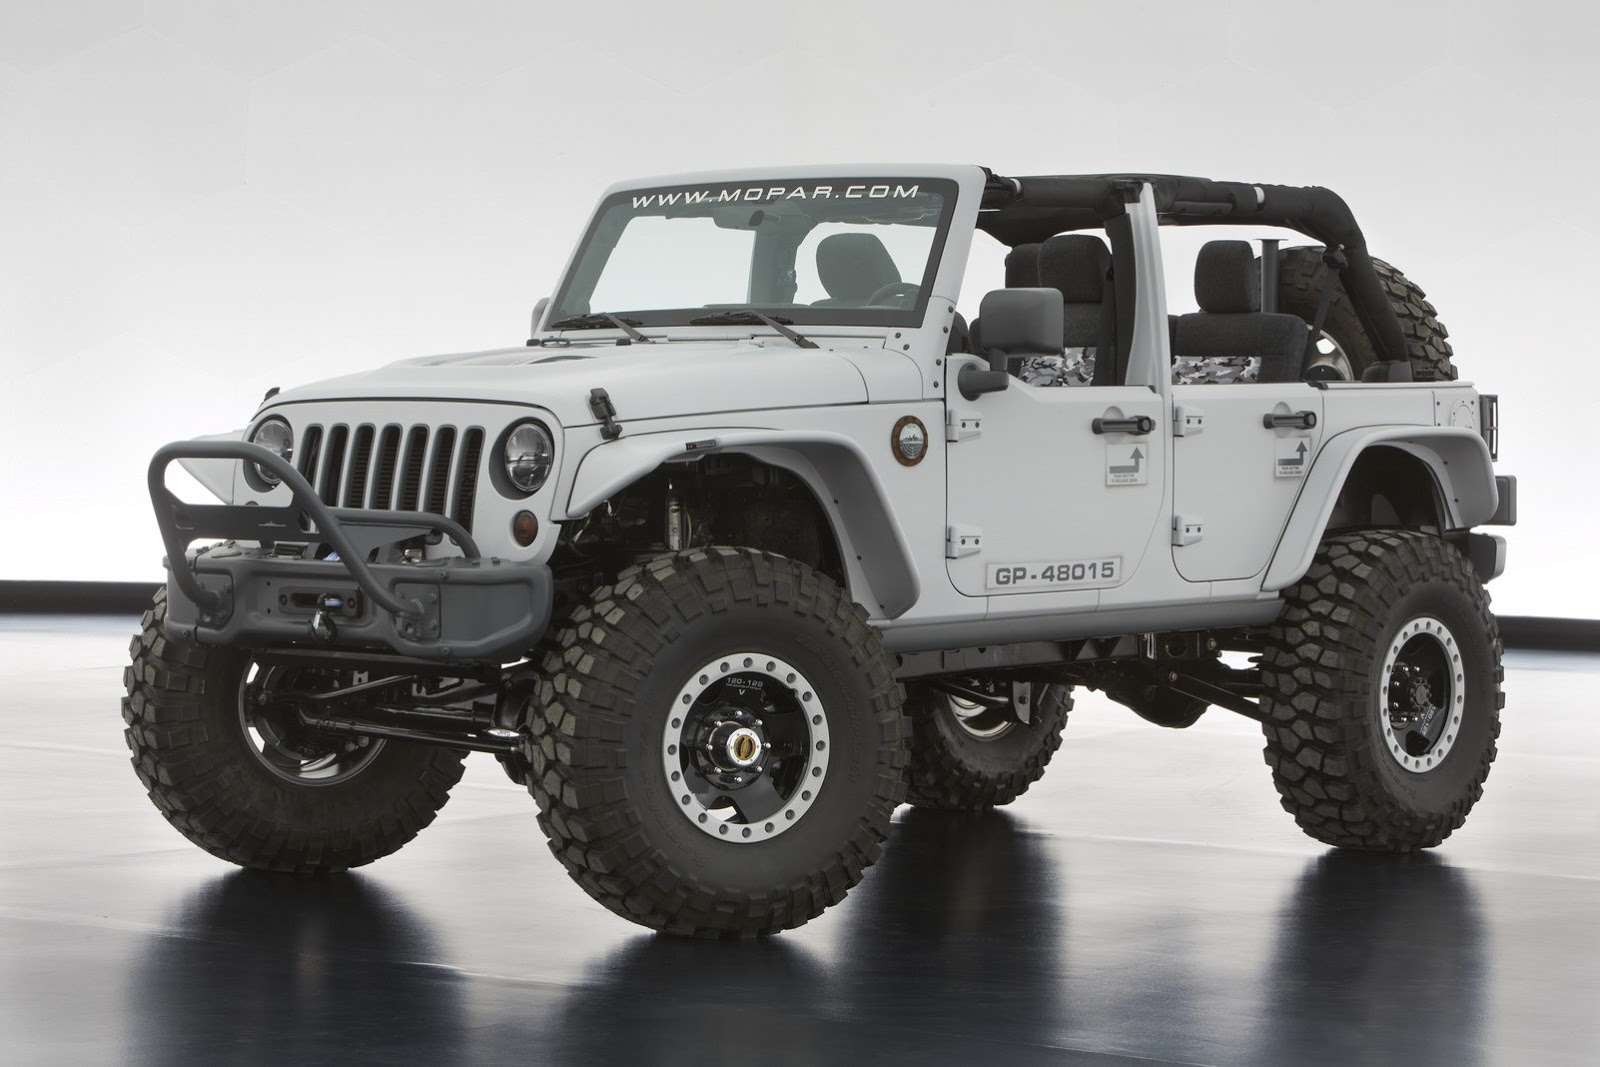 The Jeep Wrangler Mopar Recon Includes A Number Of Mopar Applications  Externally, Including Front And Rear Half Door And Window Kits, Front And  Rear ...